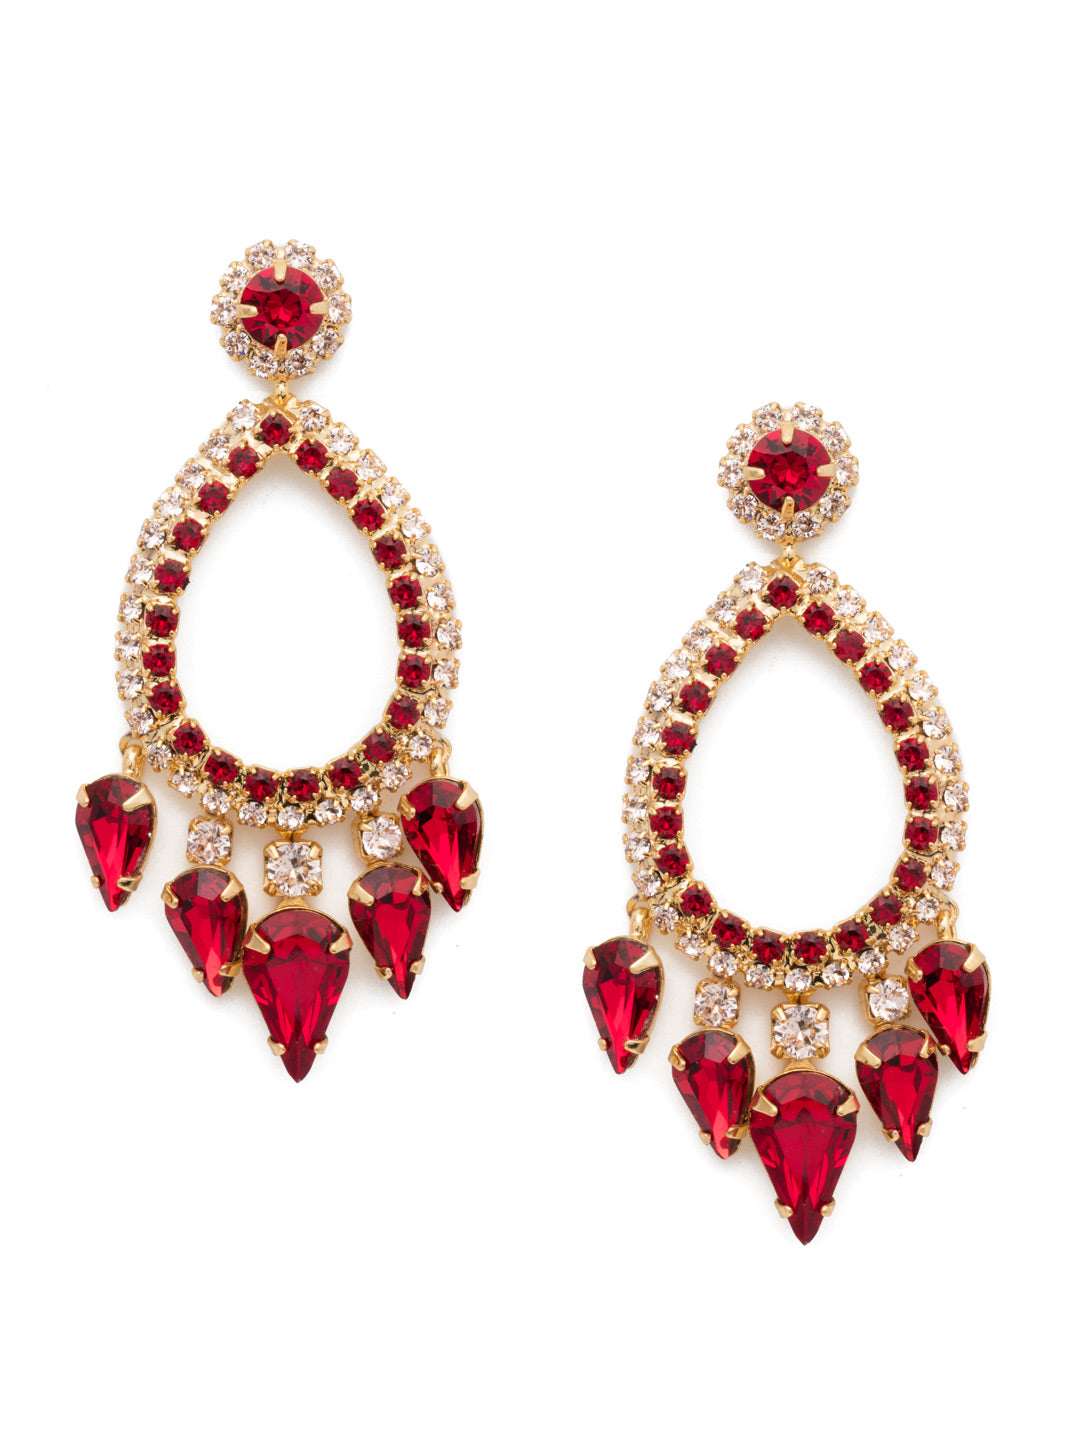 Outlined Teardrop Statement Earrings - ECU21BGSRC